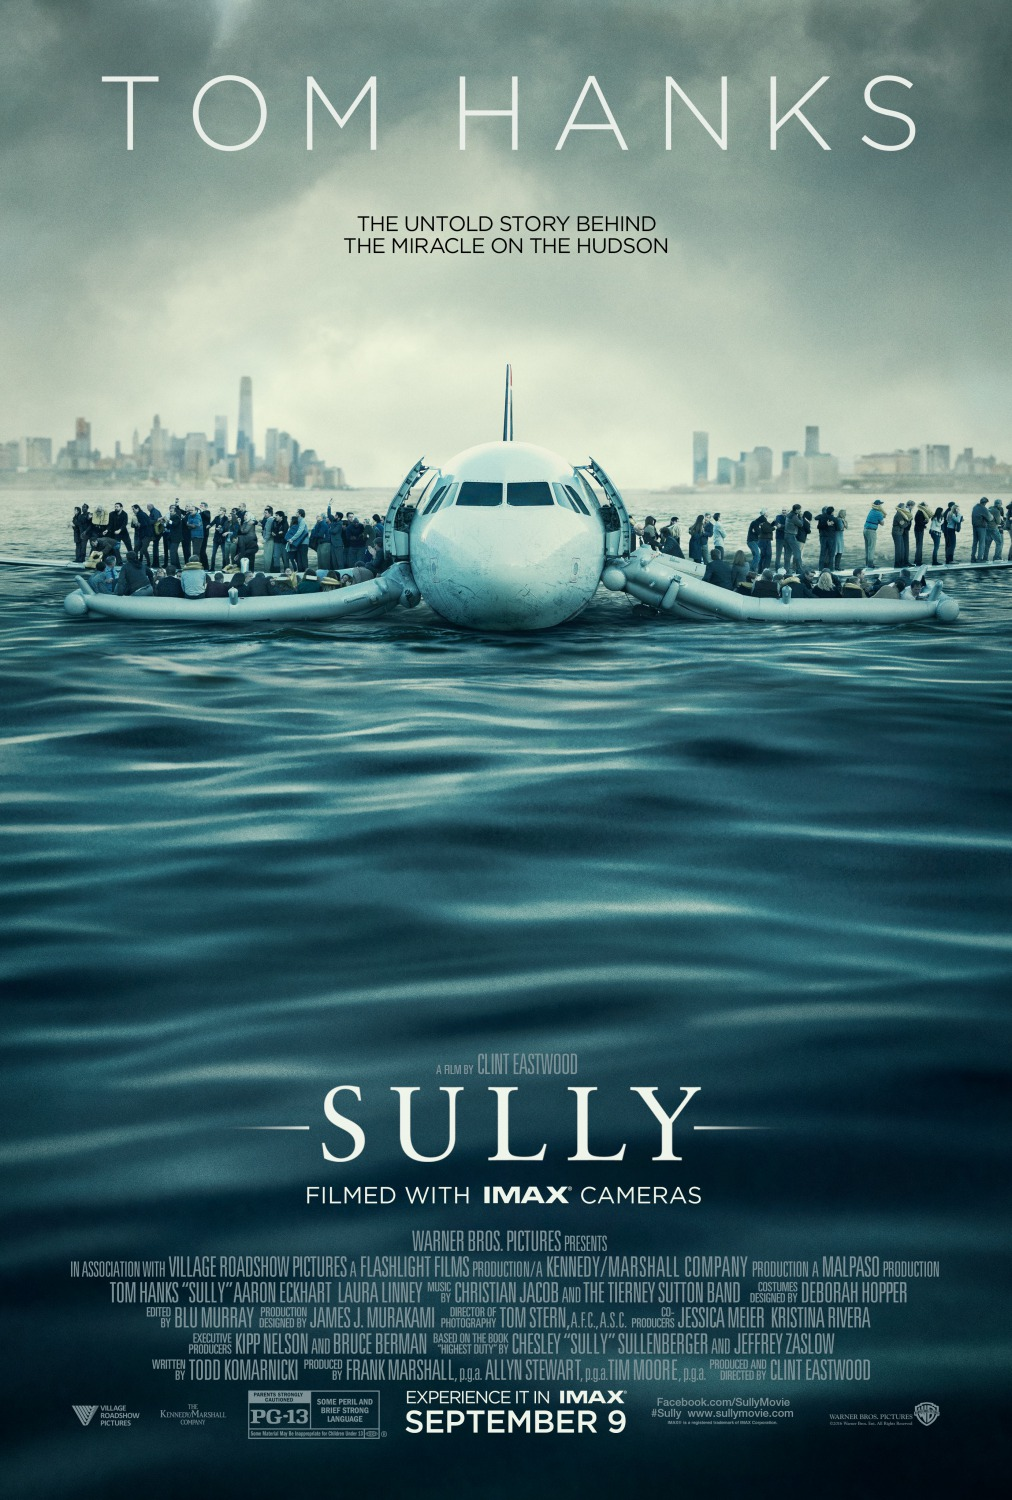 plane crash into hudson river video with In Theaters September 09 2016 Sully The Wild Life And Disappointments on Linda Gray additionally Historic New York City Crashes Gallery 1 13090 in addition In Theaters September 09 2016 Sully The Wild Life And Disappointments additionally Raising Flight 1549 Gallery 1 also Watch.